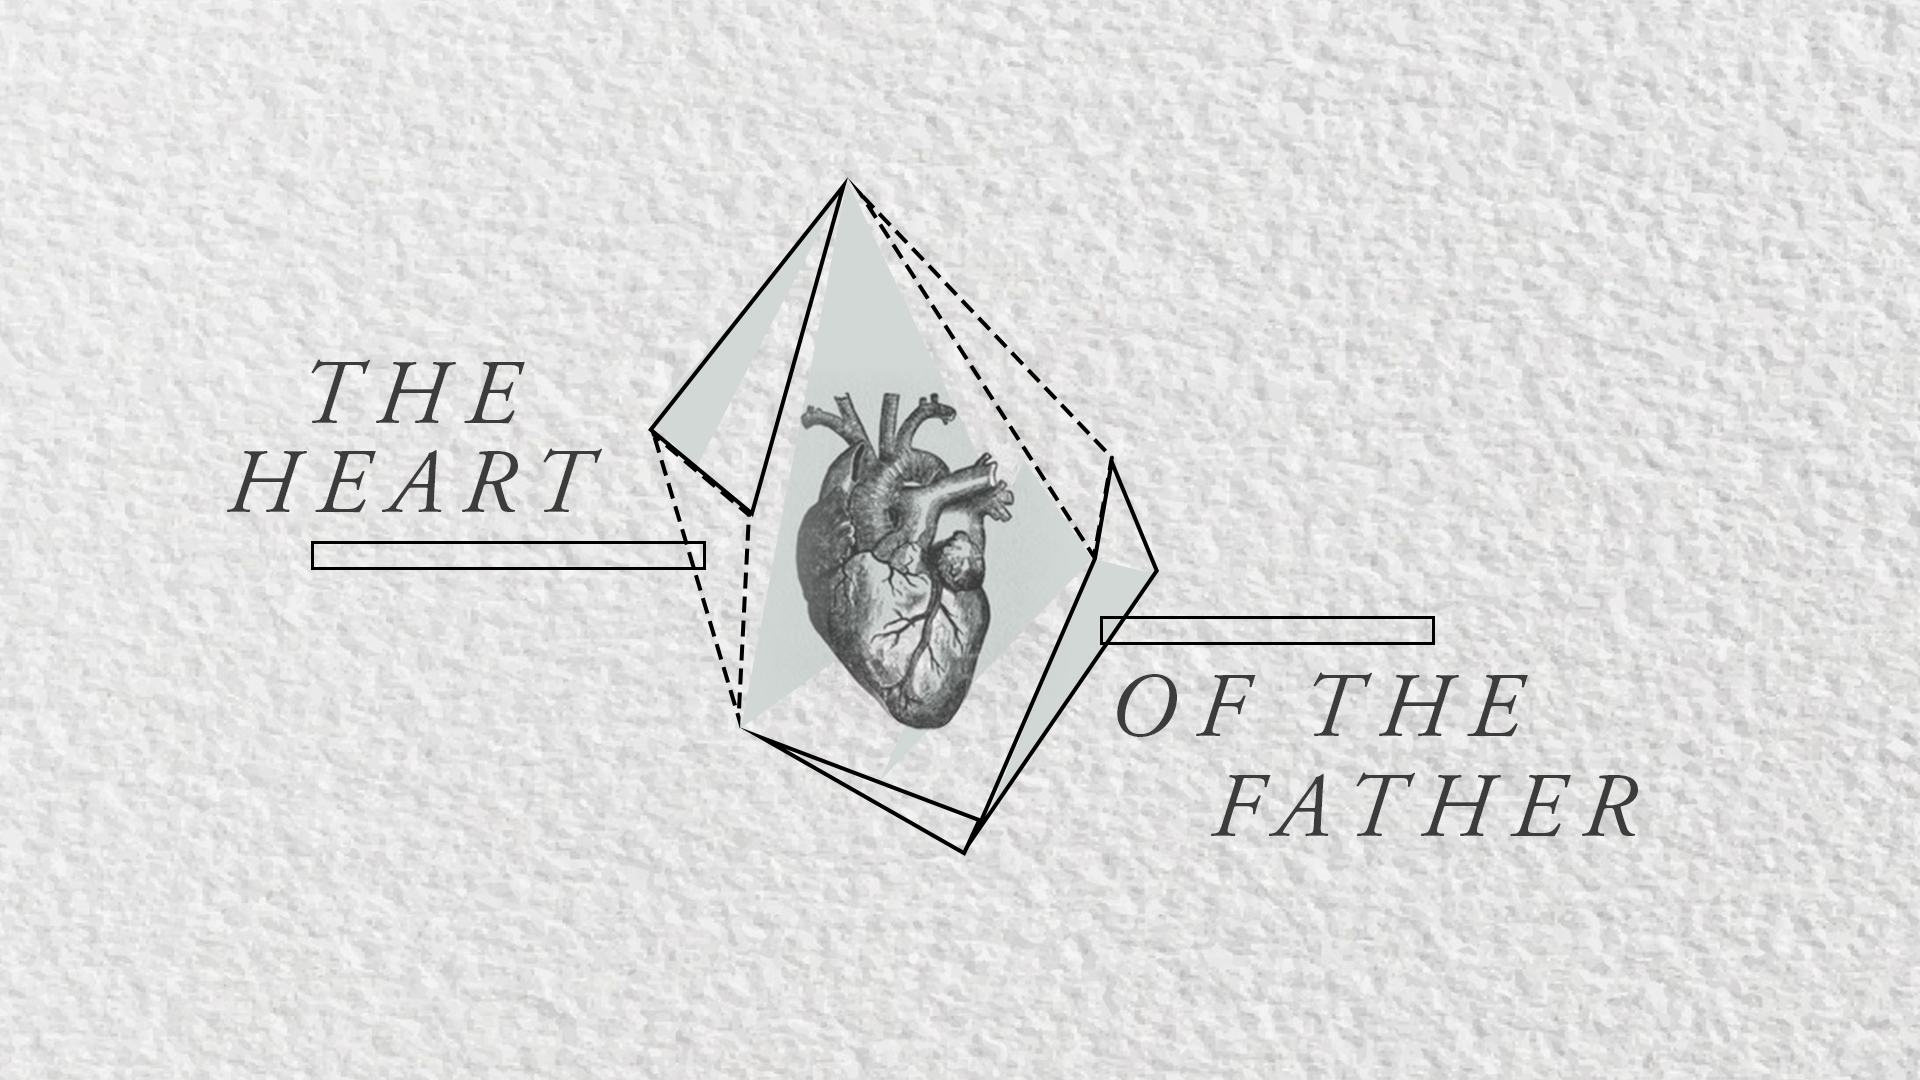 Heart of the father.jpg